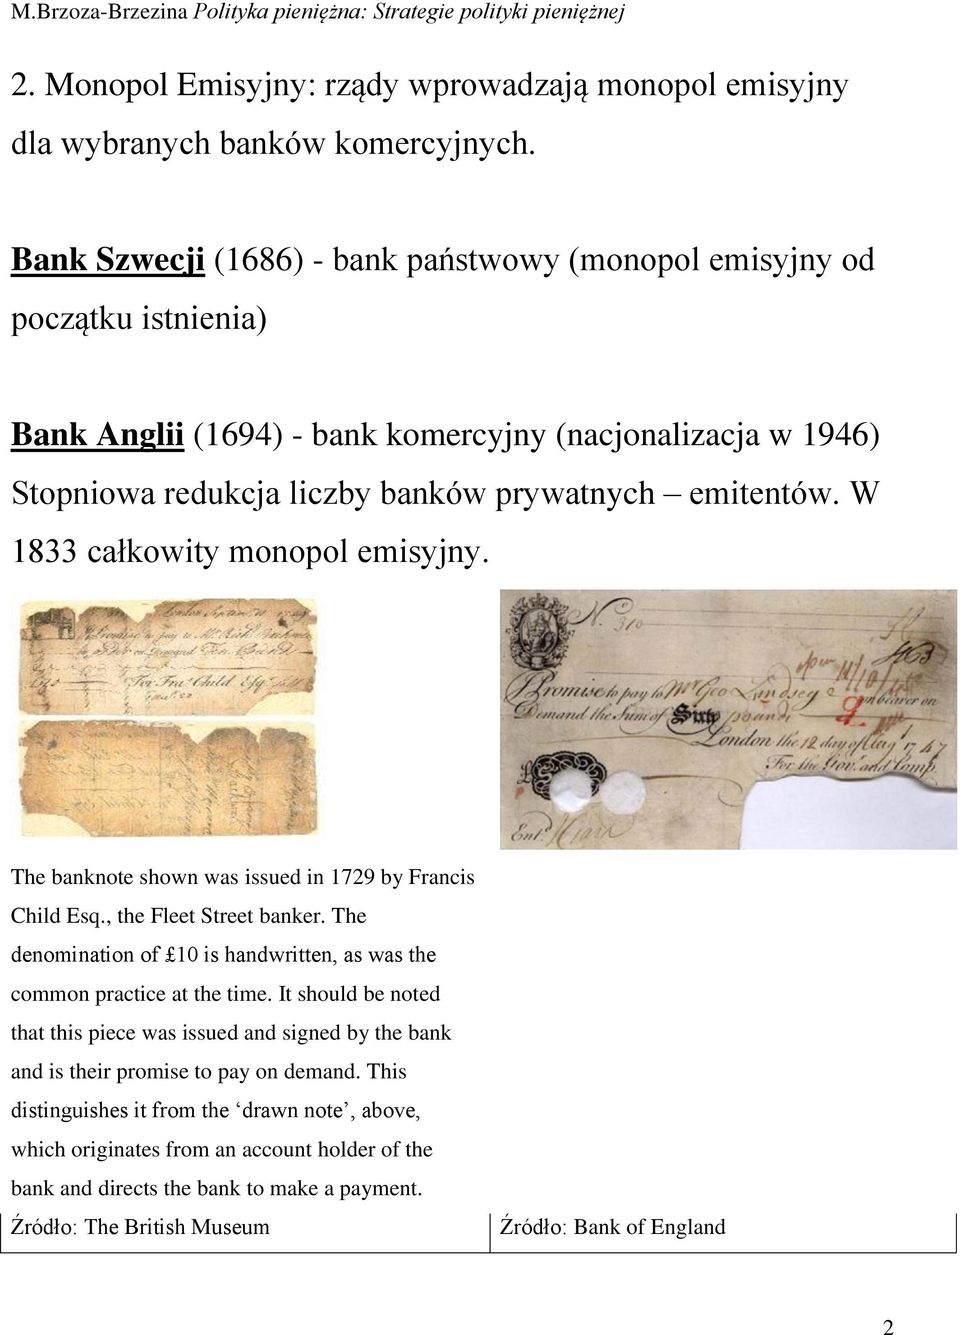 W 1833 całkowity monopol emisyjny. The banknote shown was issued in 1729 by Francis Child Esq., the Fleet Street banker.